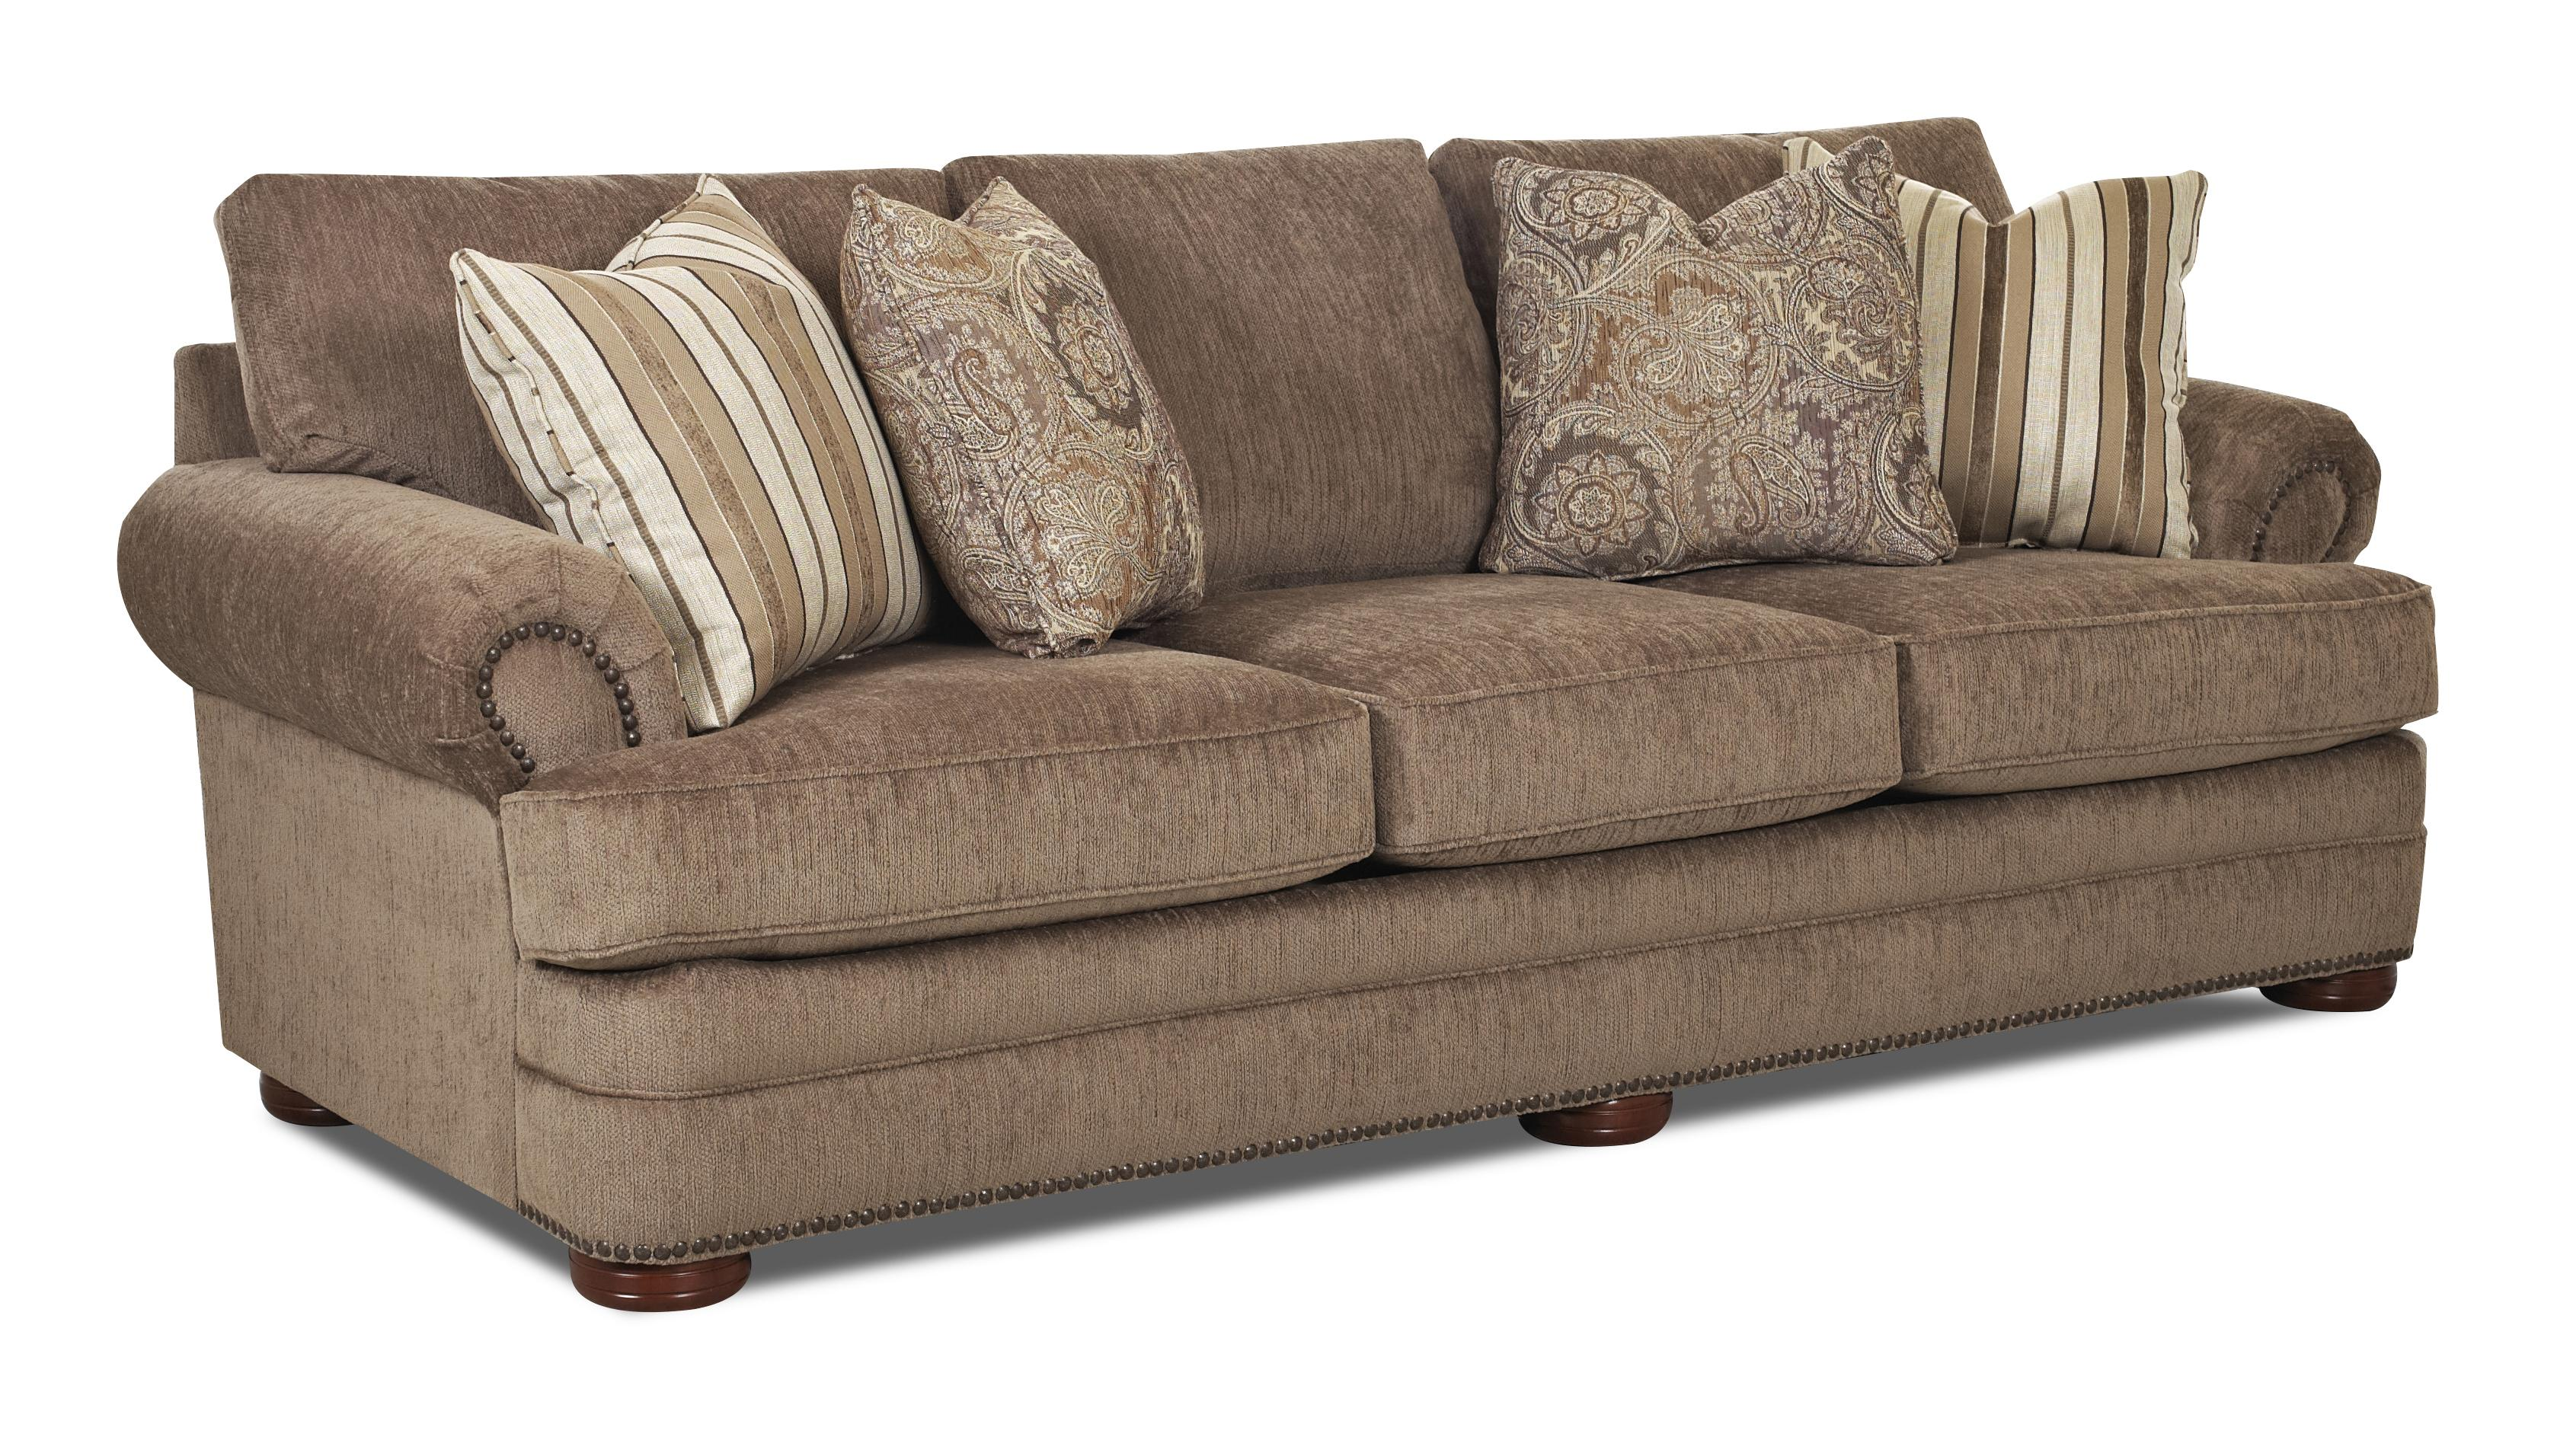 Traditional Sofa With Rolled Arms And Nailhead Trim By